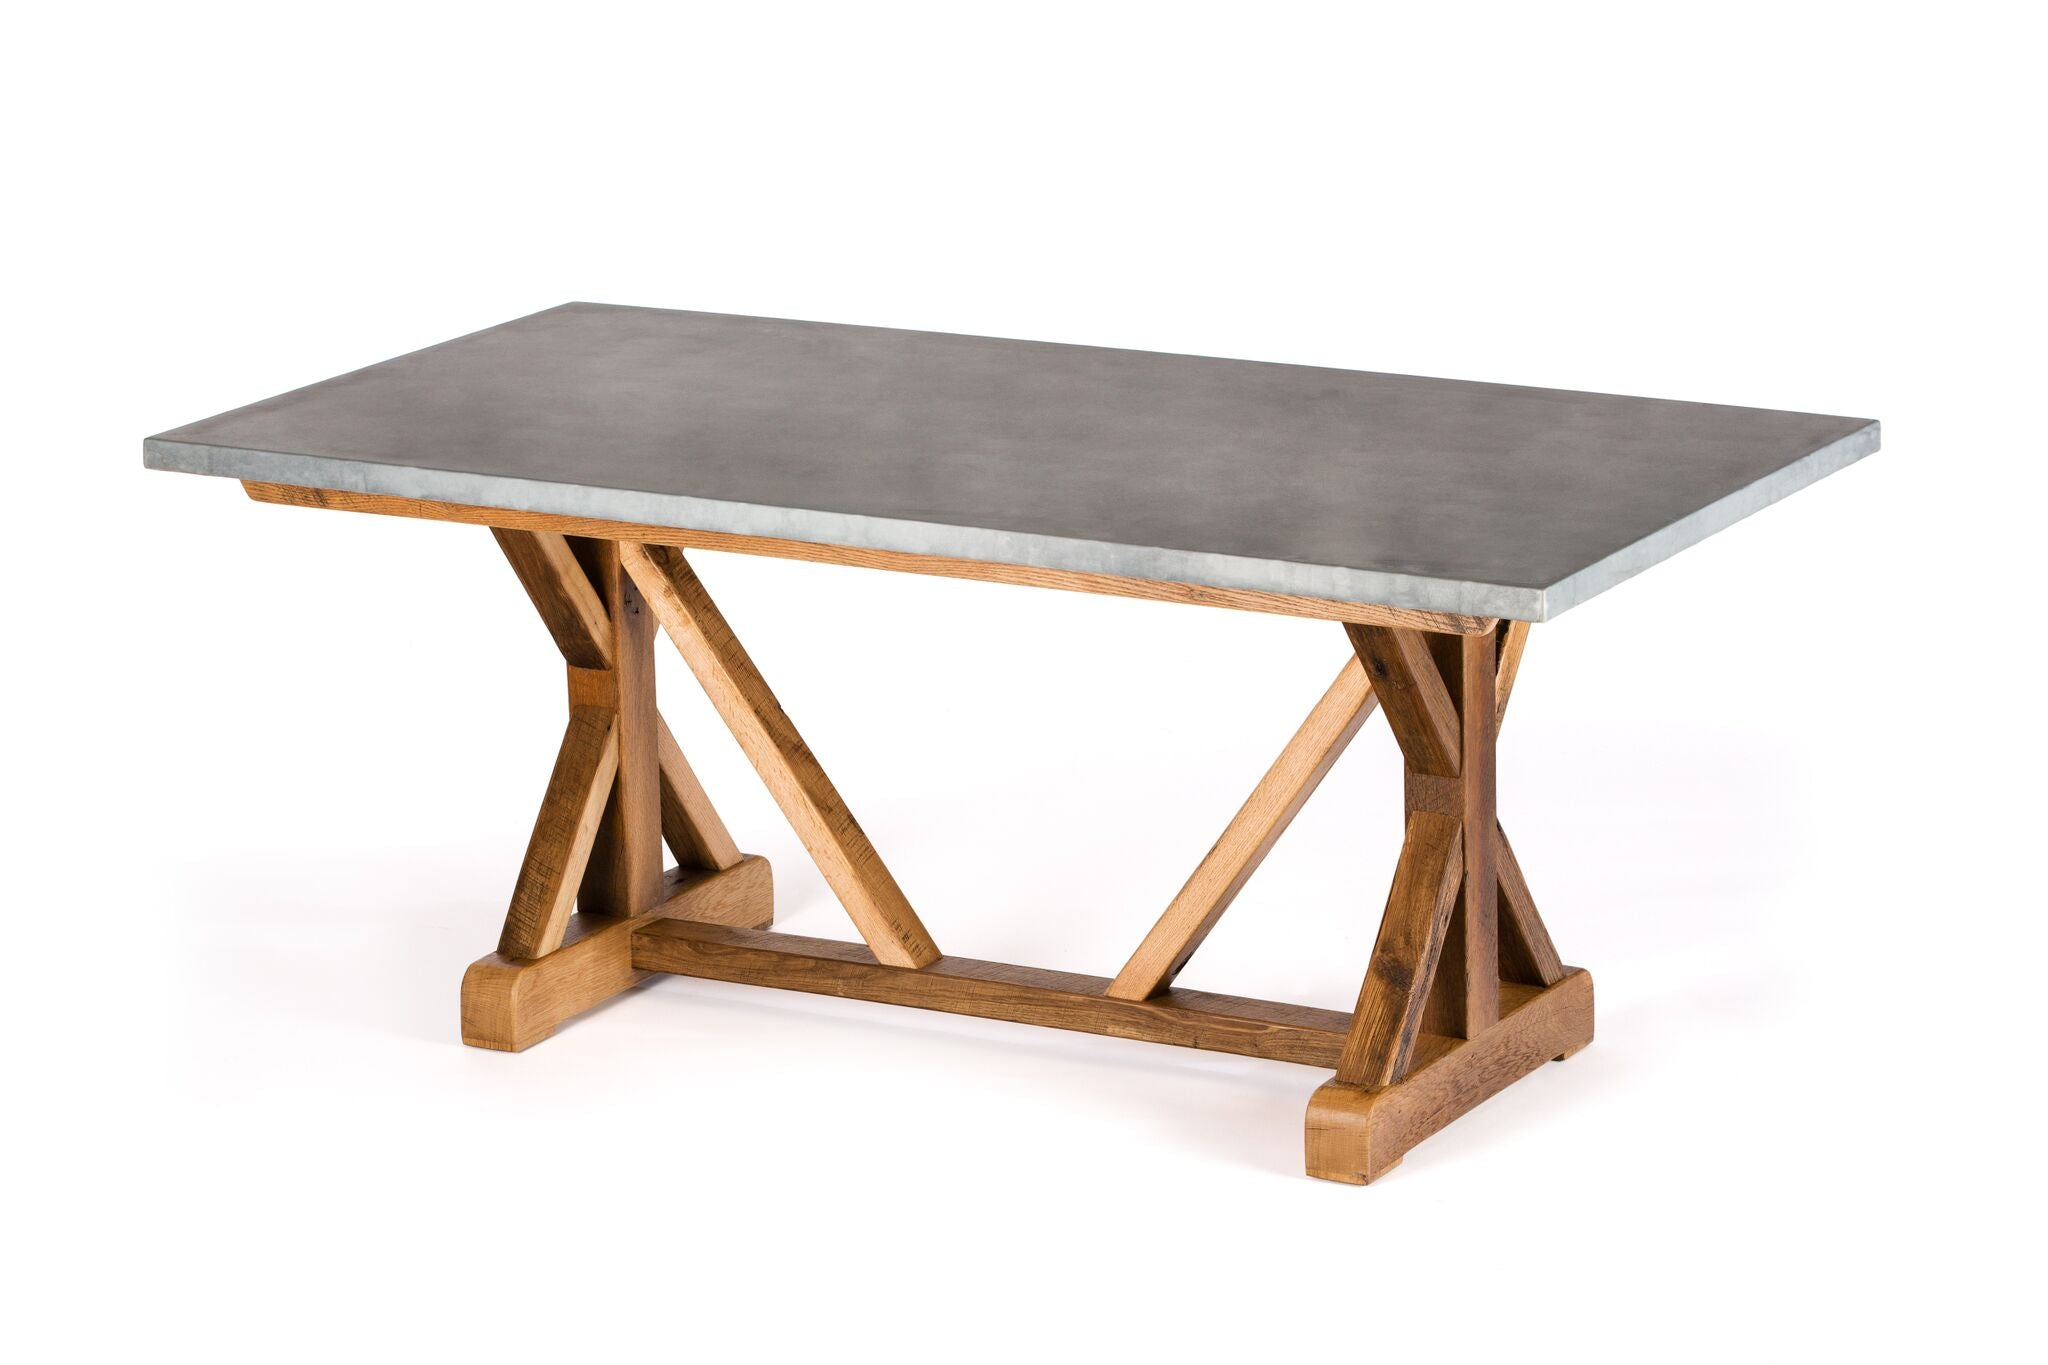 "Zinc Rectangular Table | French Trestle Table | CLASSIC | Weathered Grey on Reclaimed Oak | CUSTOM SIZE 60""L 37""W 30""H 